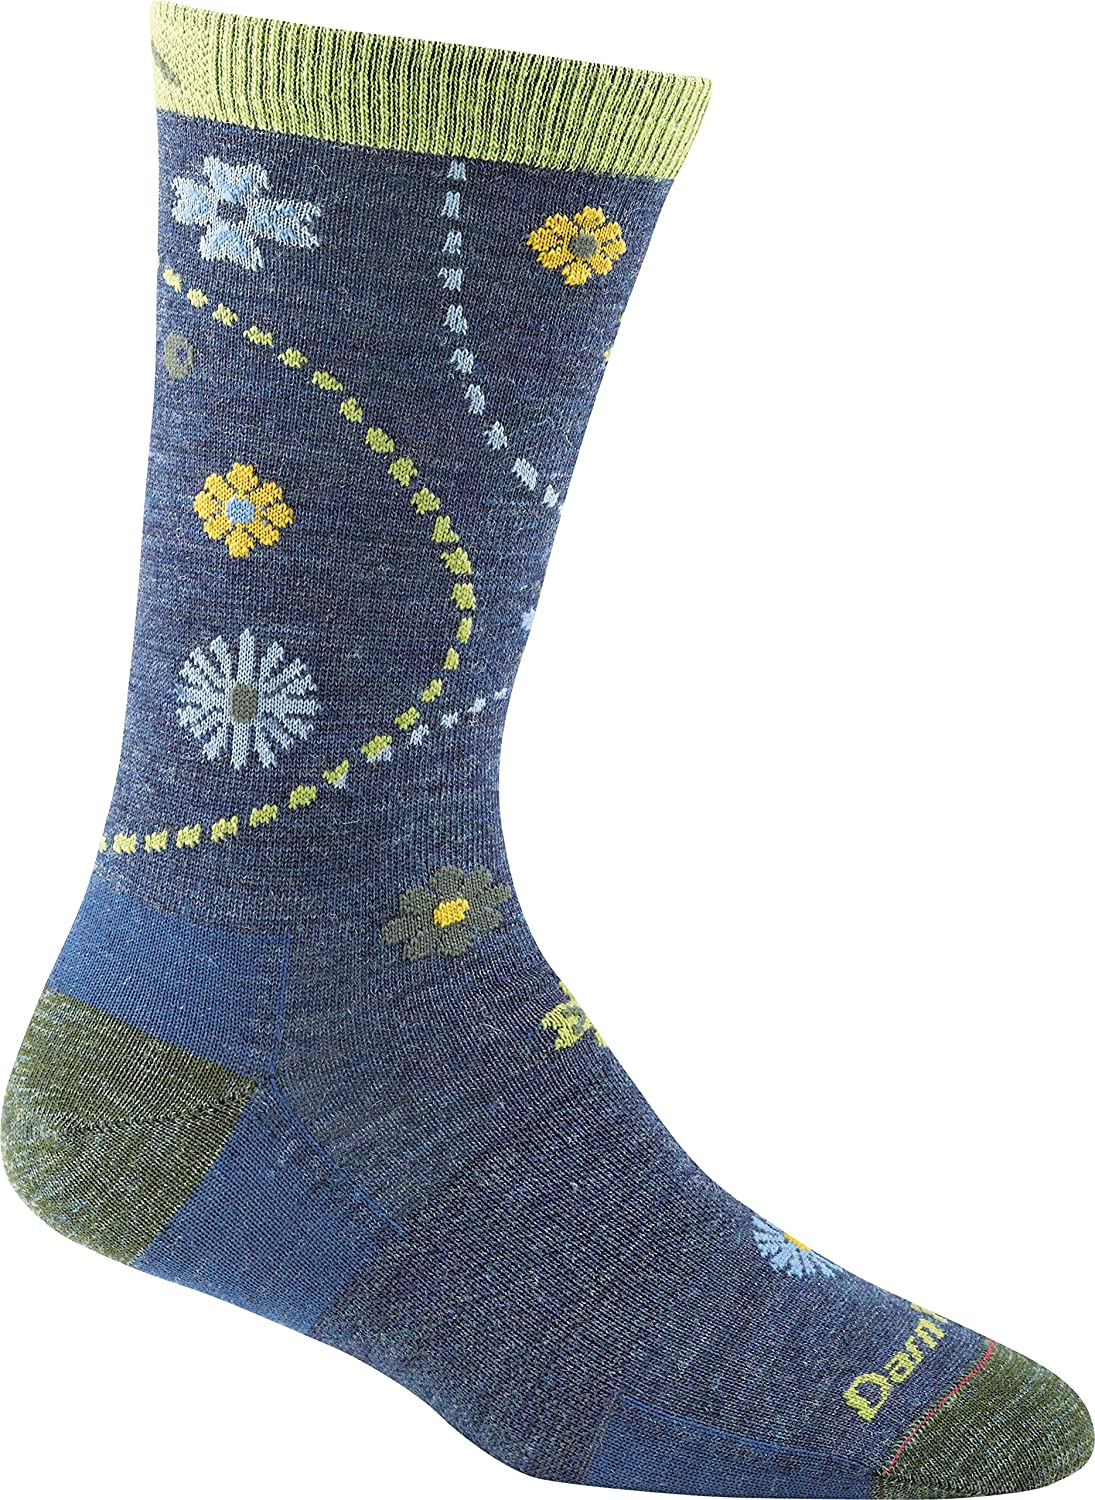 Darn Tough Women's Garden Crew Light Sock